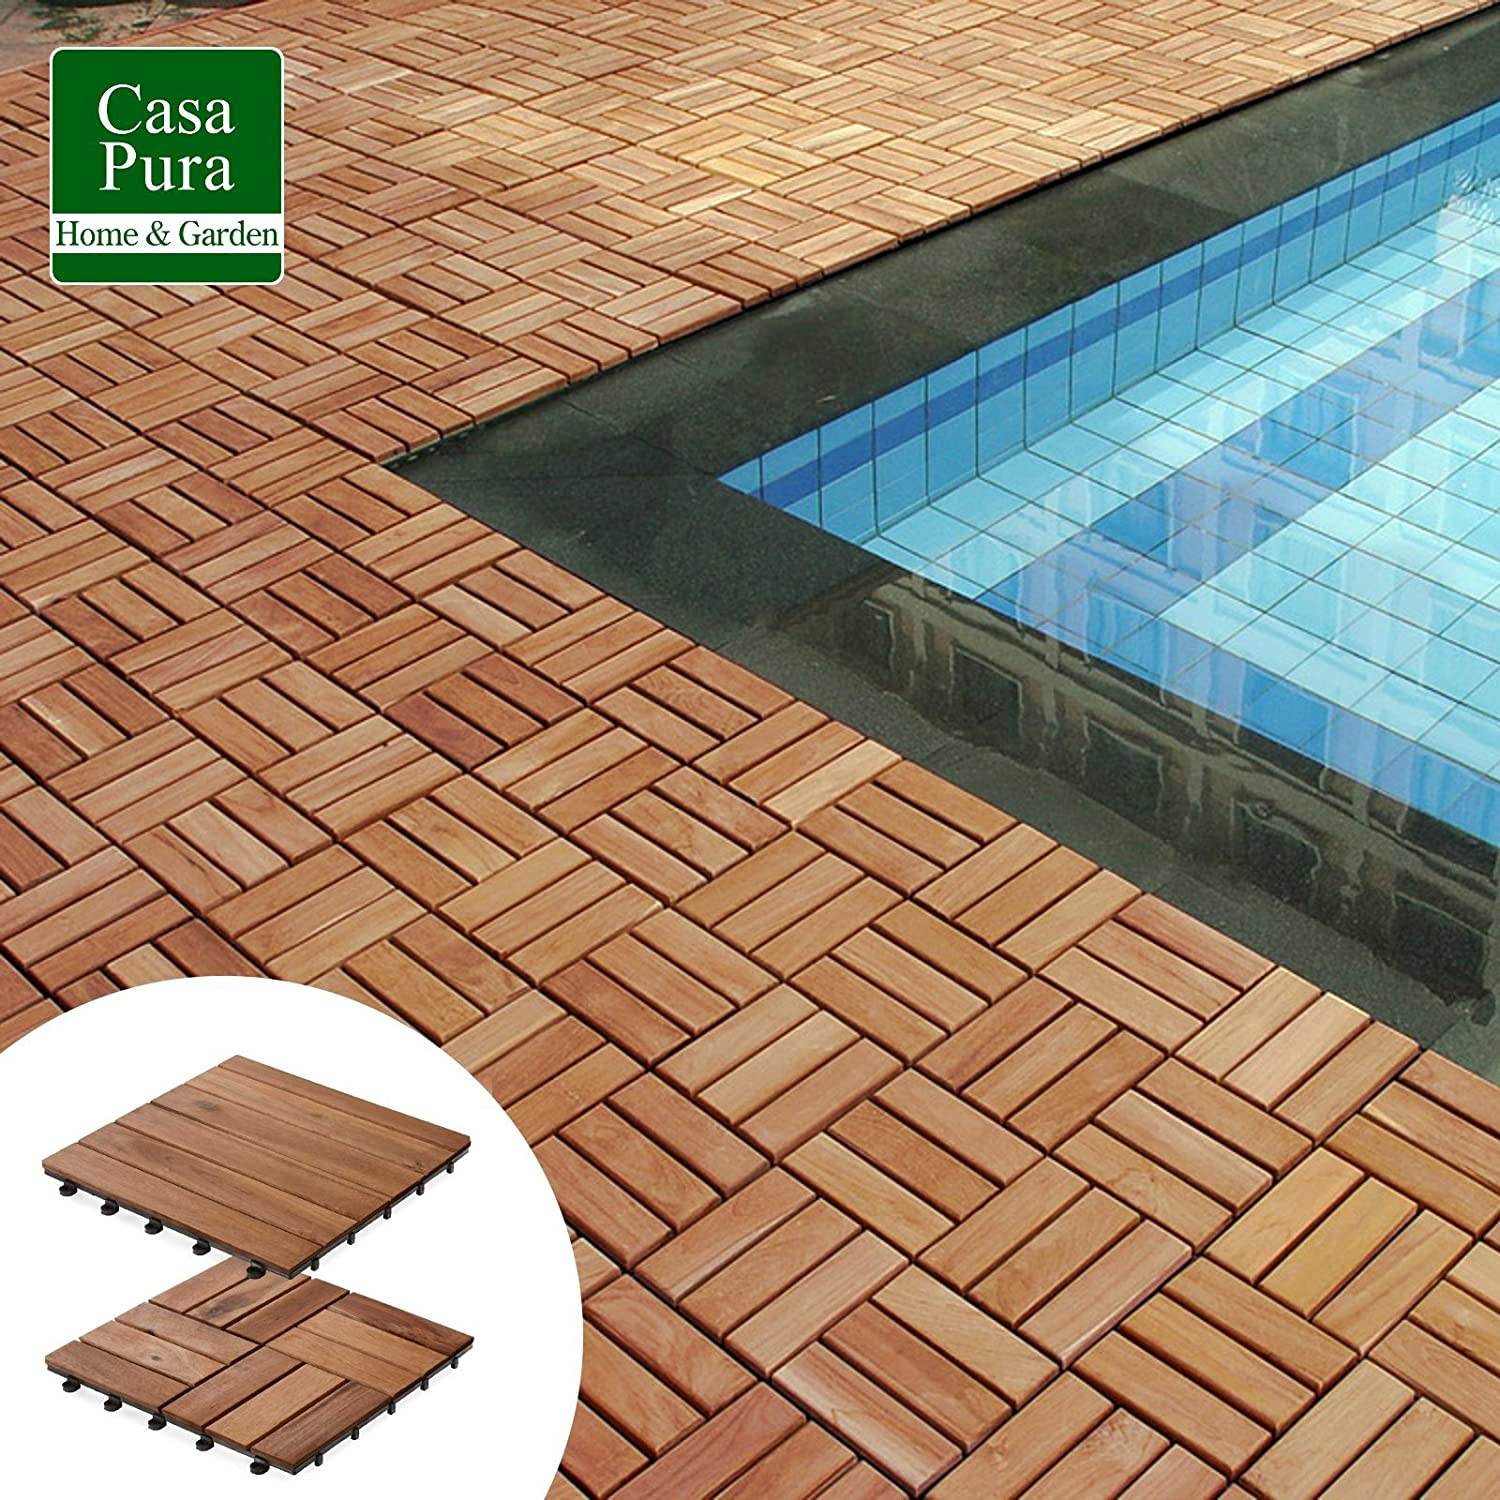 Patio Pavers Composite Decking Flooring And Deck Tiles Acacia